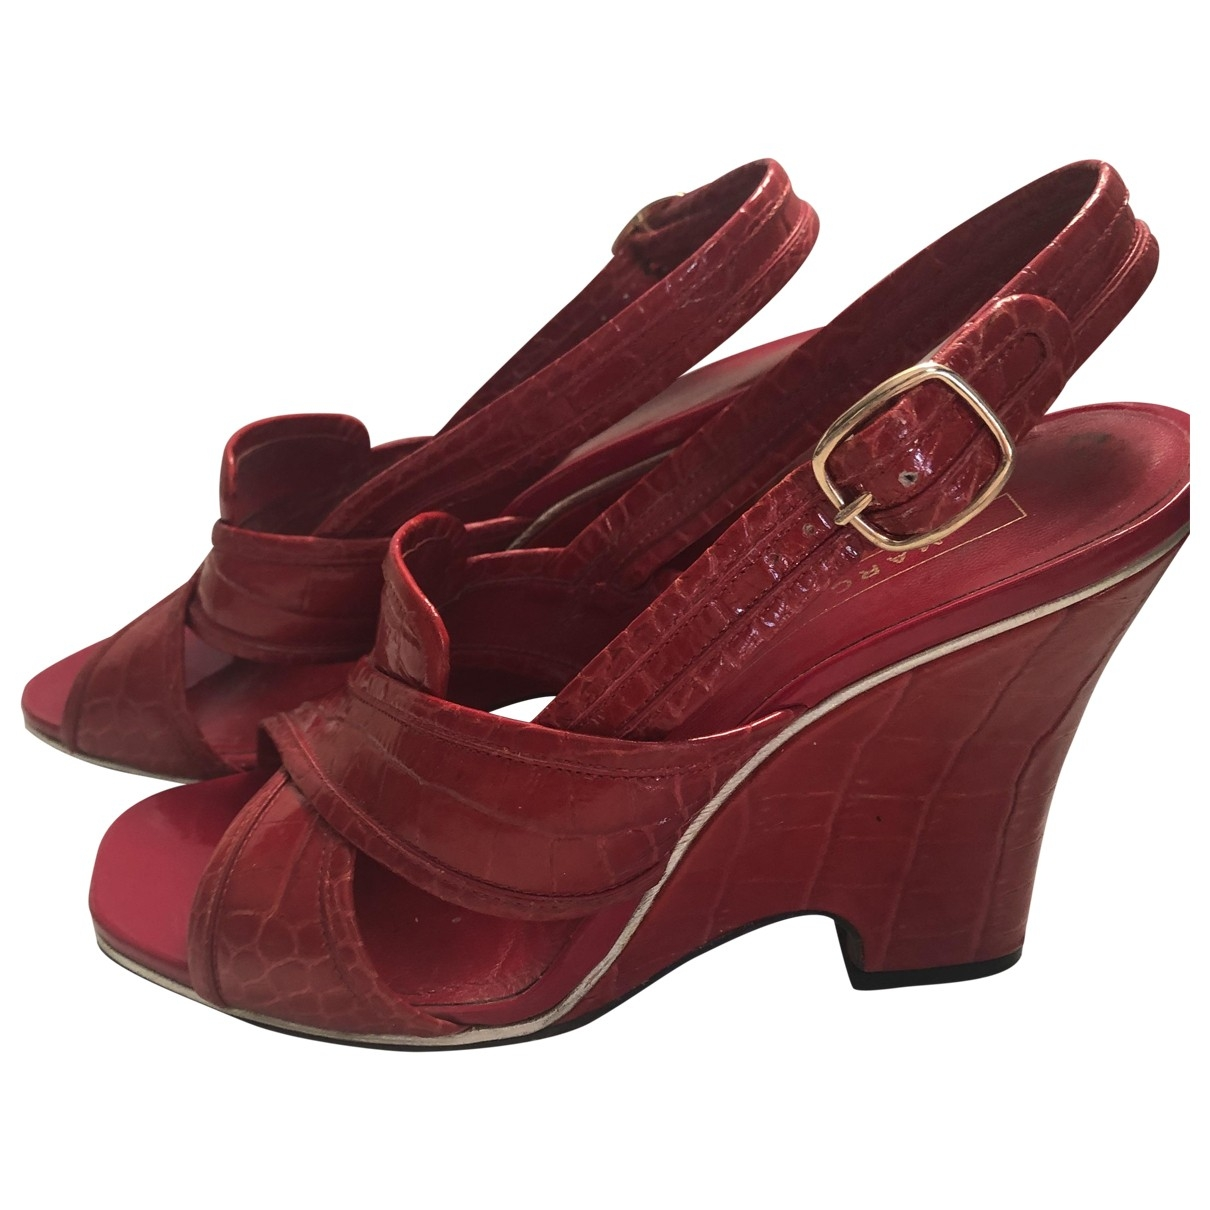 Marc Jacobs \N Red Patent leather Sandals for Women 38 EU